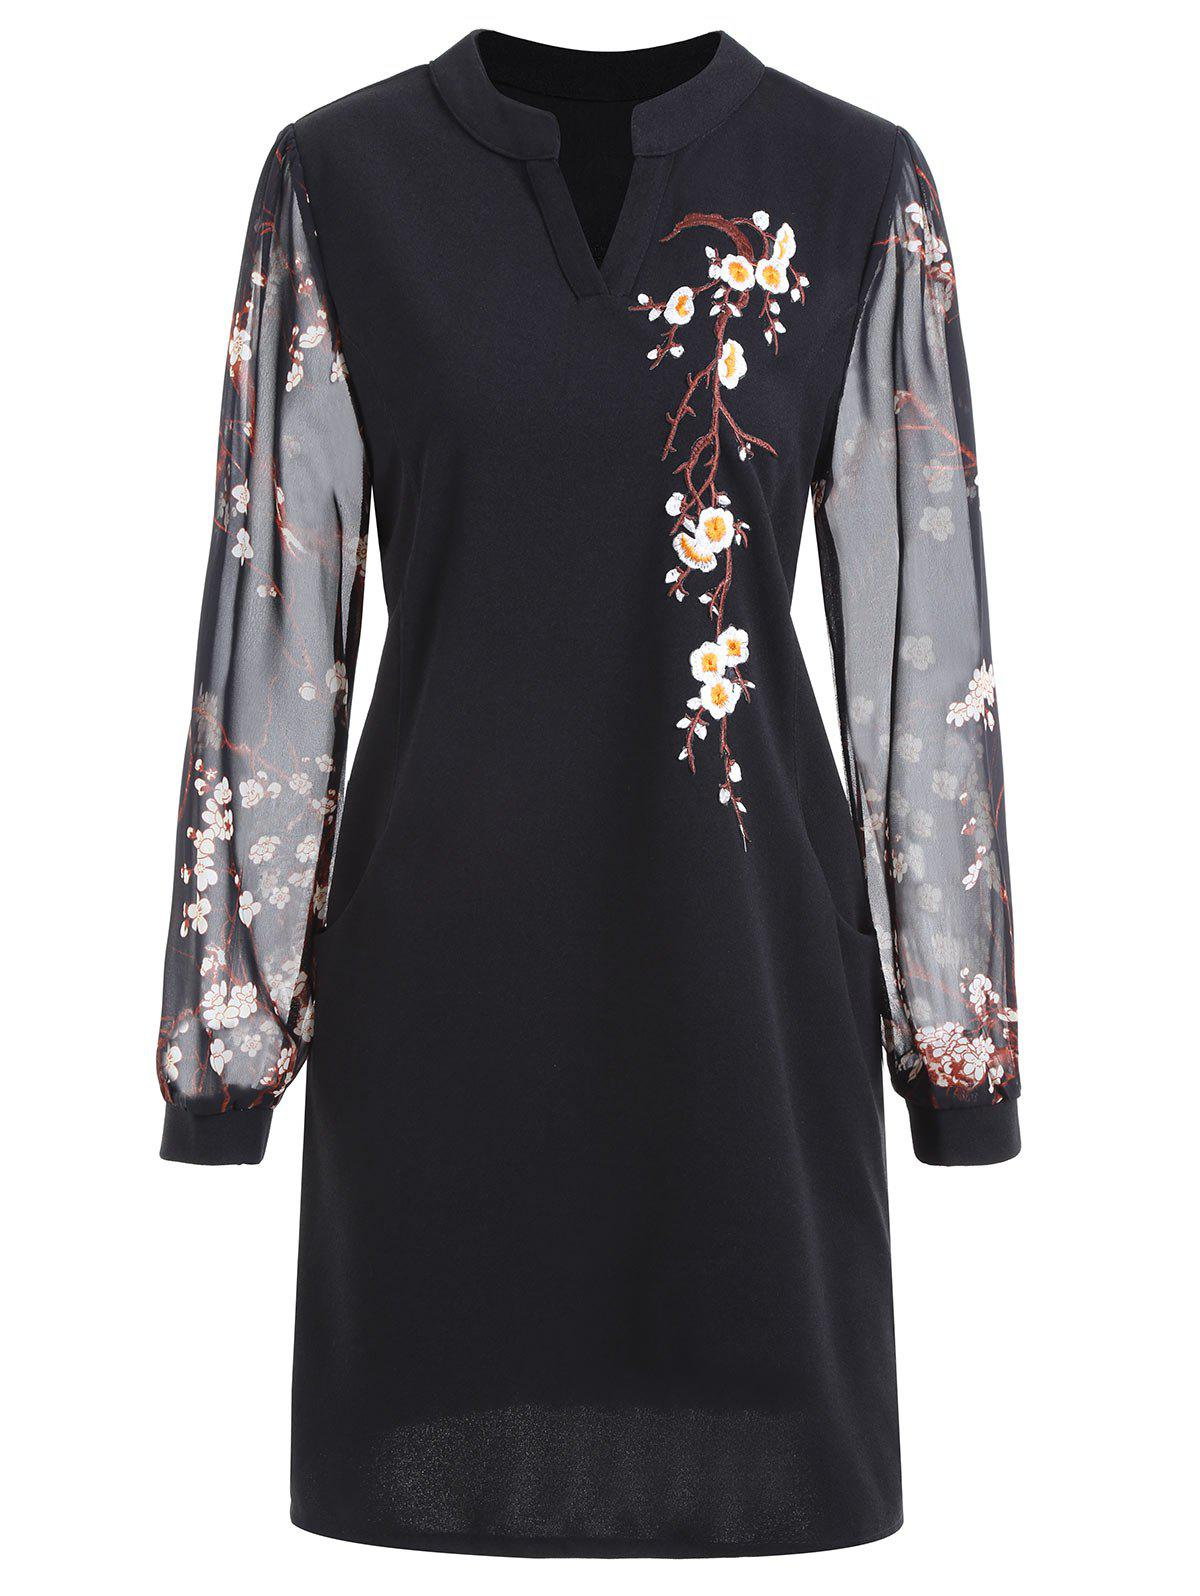 Floral Embroidered Plus Size Mini Dress - BLACK 5XL